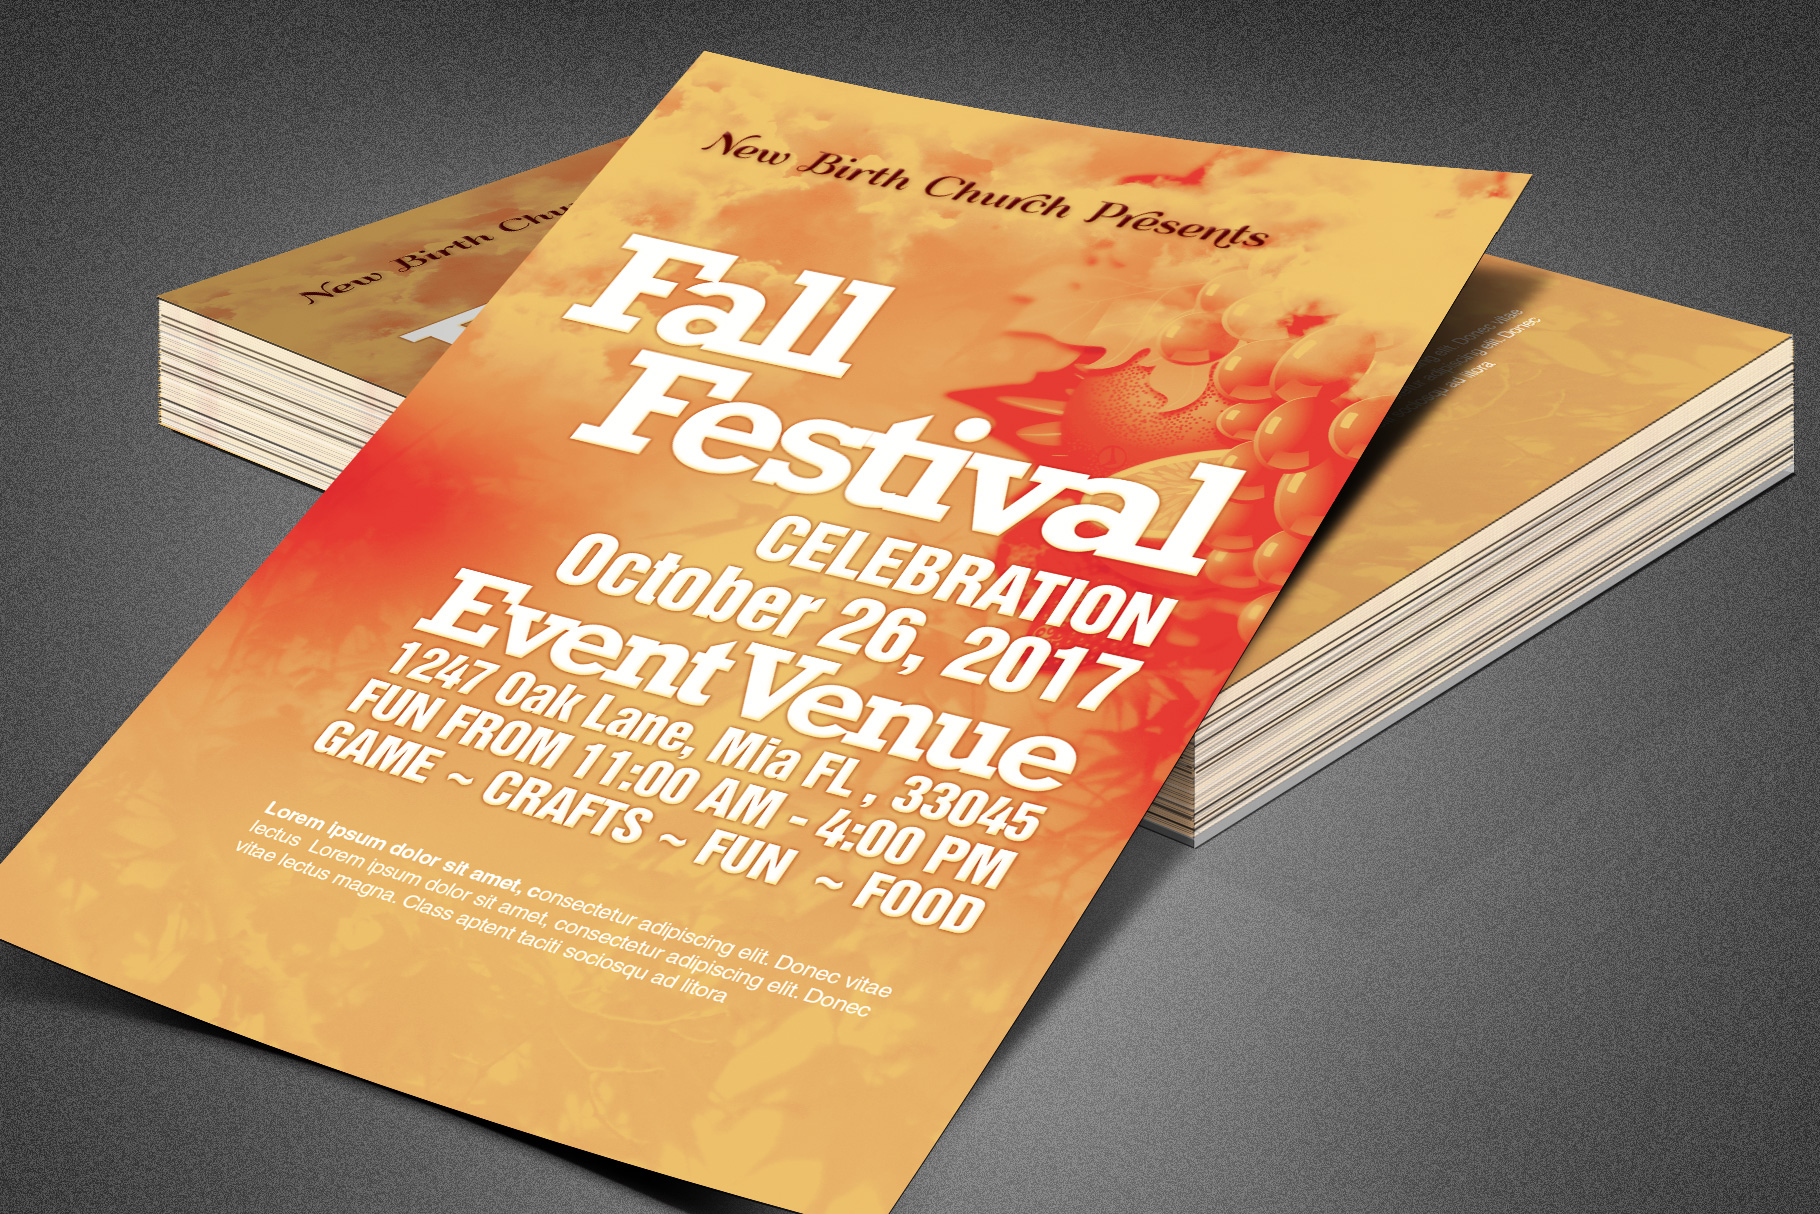 Fall Festival Church Flyer Template example image 4